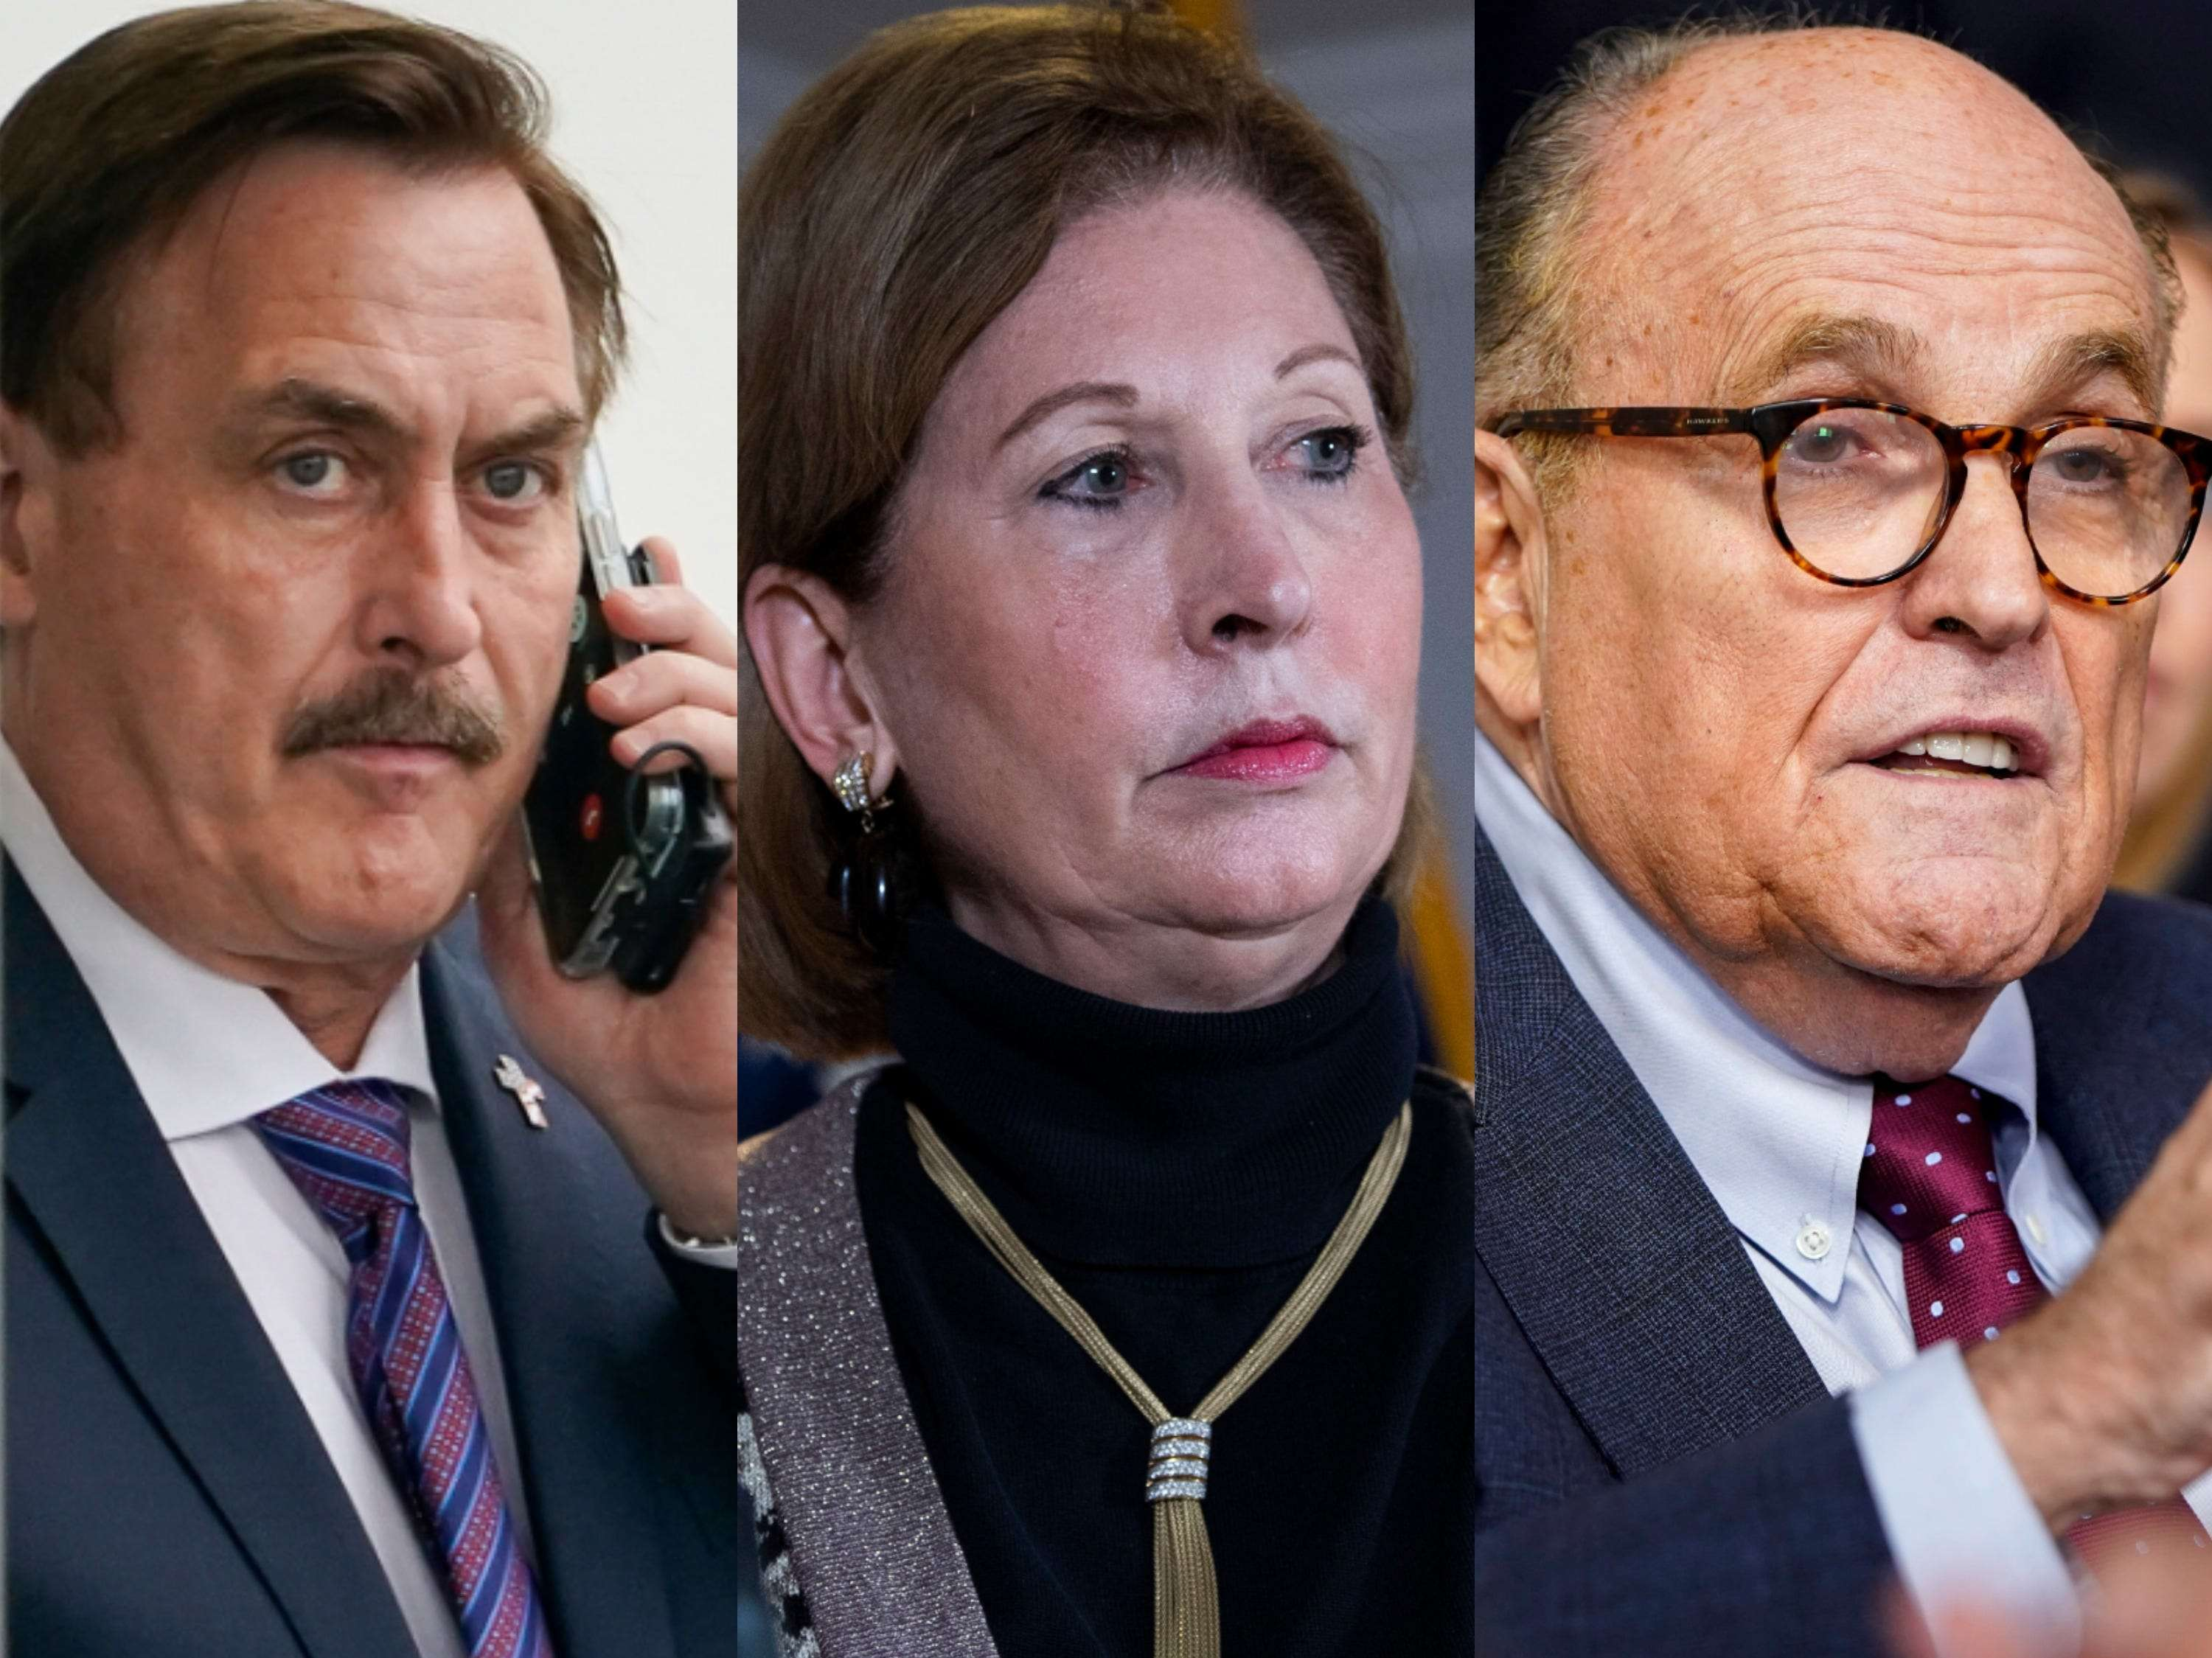 After-suing-Mike-Lindell-Sidney-Powell-and-Rudy-Giuliani-Dominion-says-it-will-go-after-others-who-spread-claims-of-election-fraud-and-its-not-ruling-anyone-out.jpg